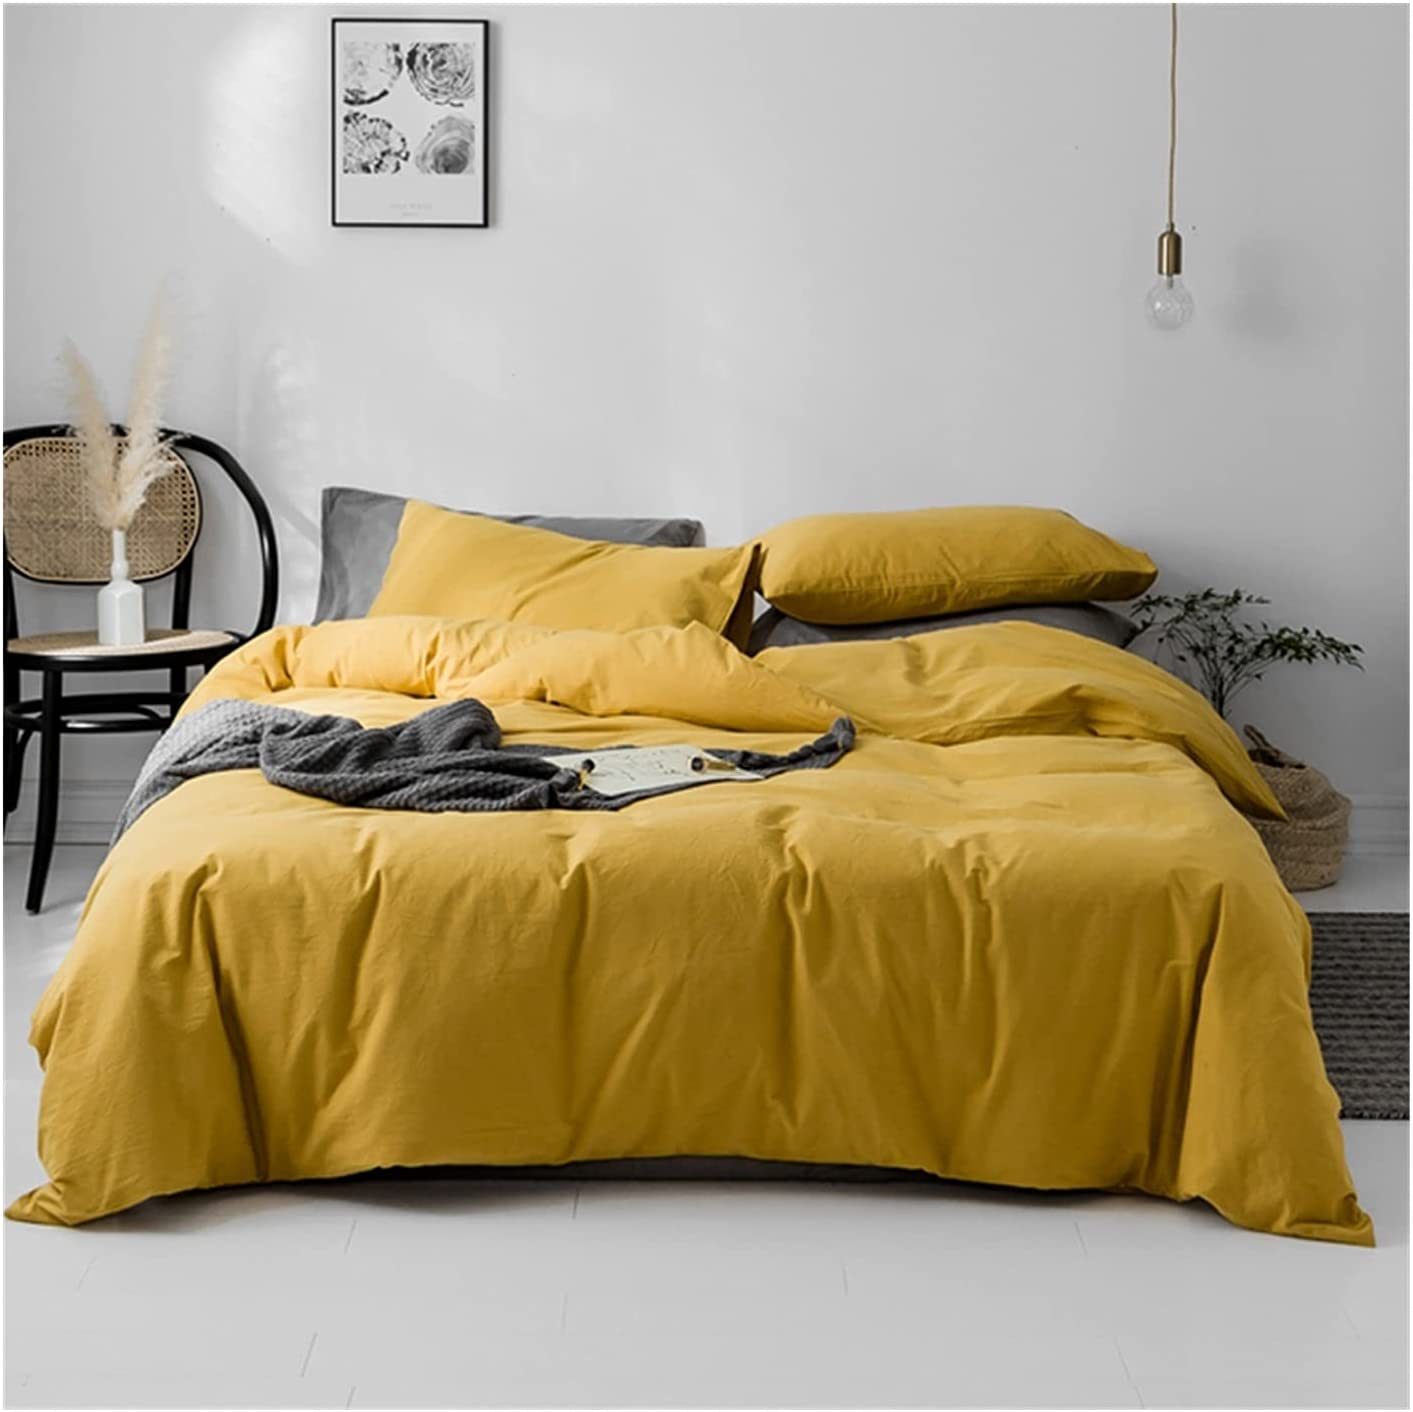 Full Queen ! Super beauty product restock quality top! King Twin Regular discount Double Quilt Pieces 100% Cover 4 Set Duvet